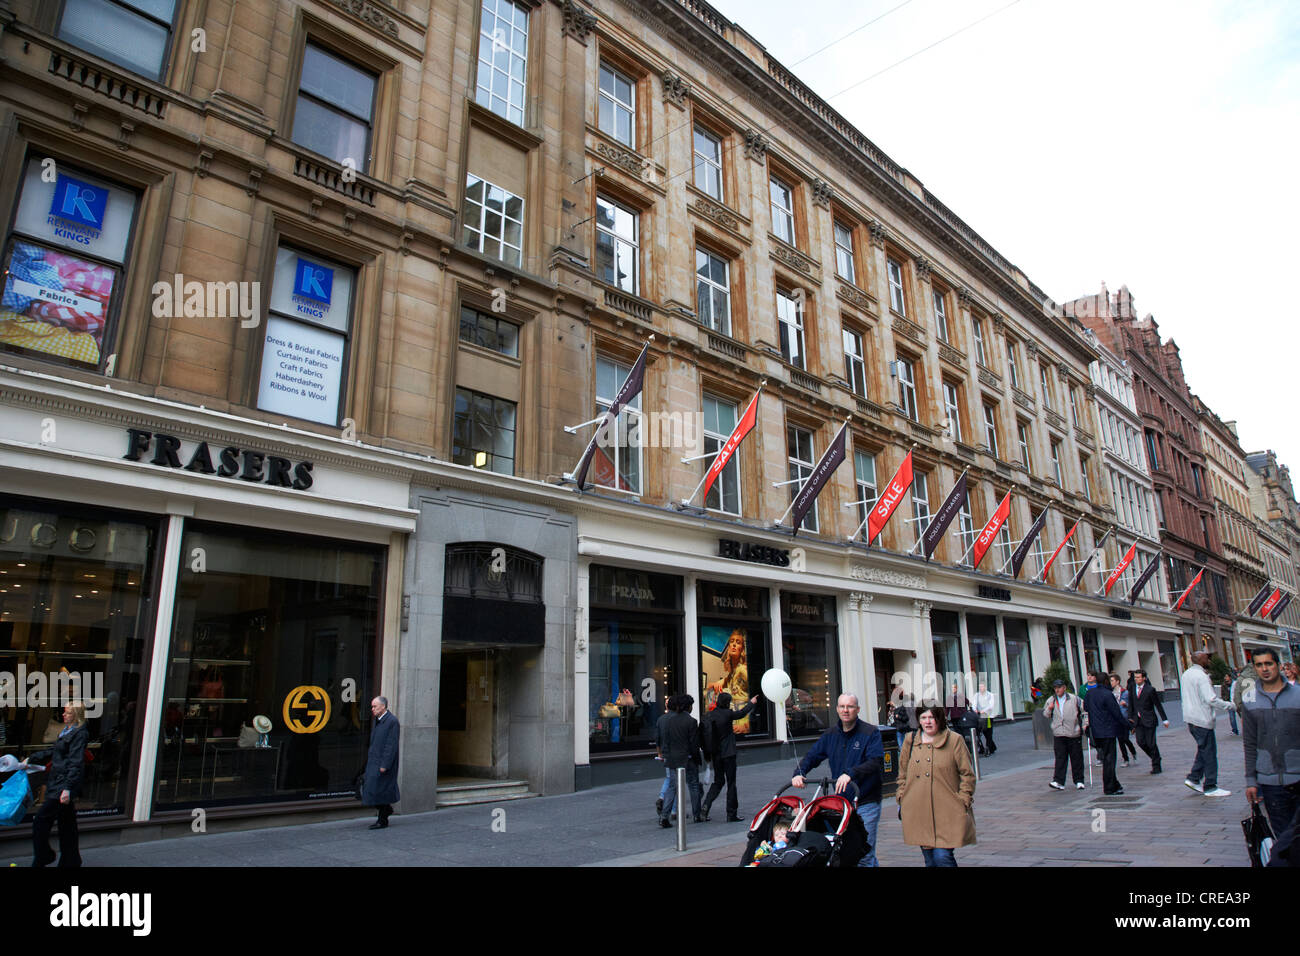 frasers house of fraser department store in glasgow scotland uk - Stock Image